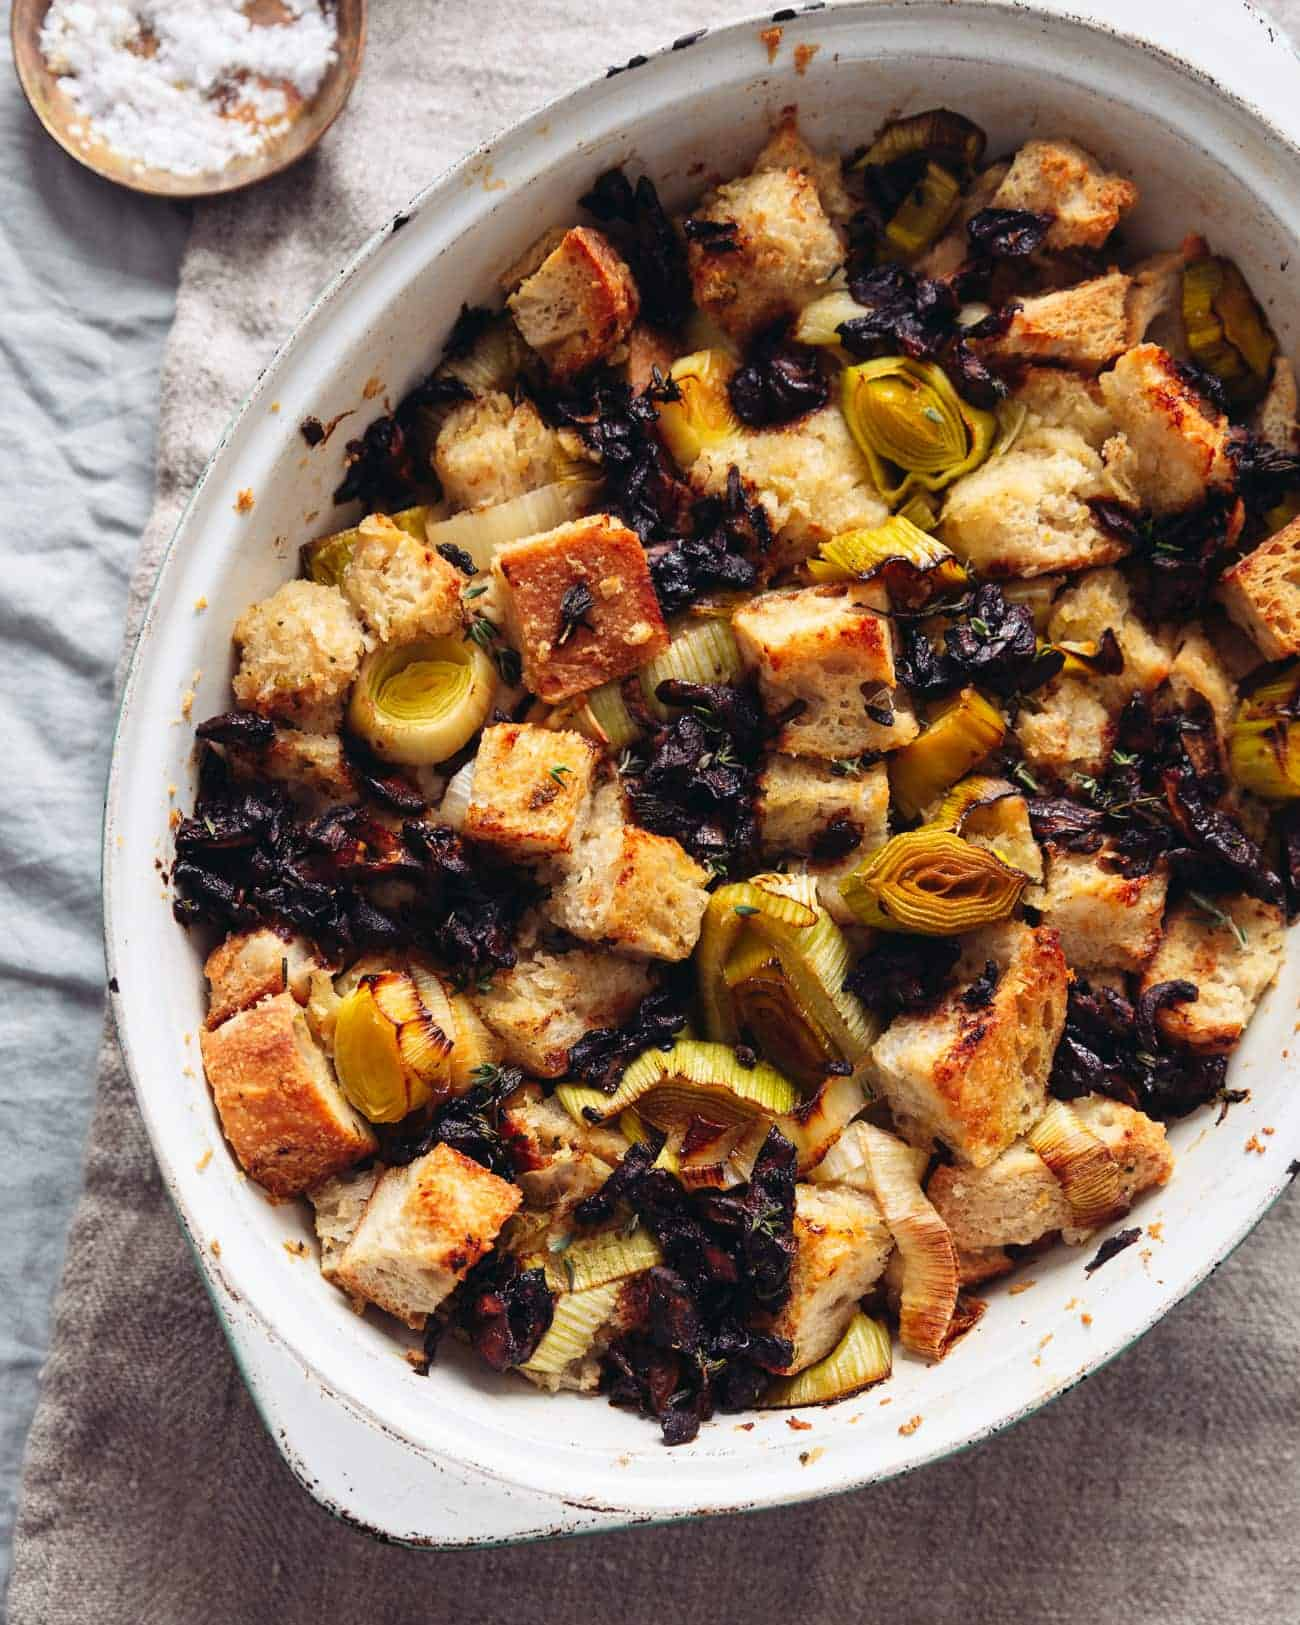 A close up of a dish of vegan sourdough stuffing with leeks and soy-sauce mushrooms